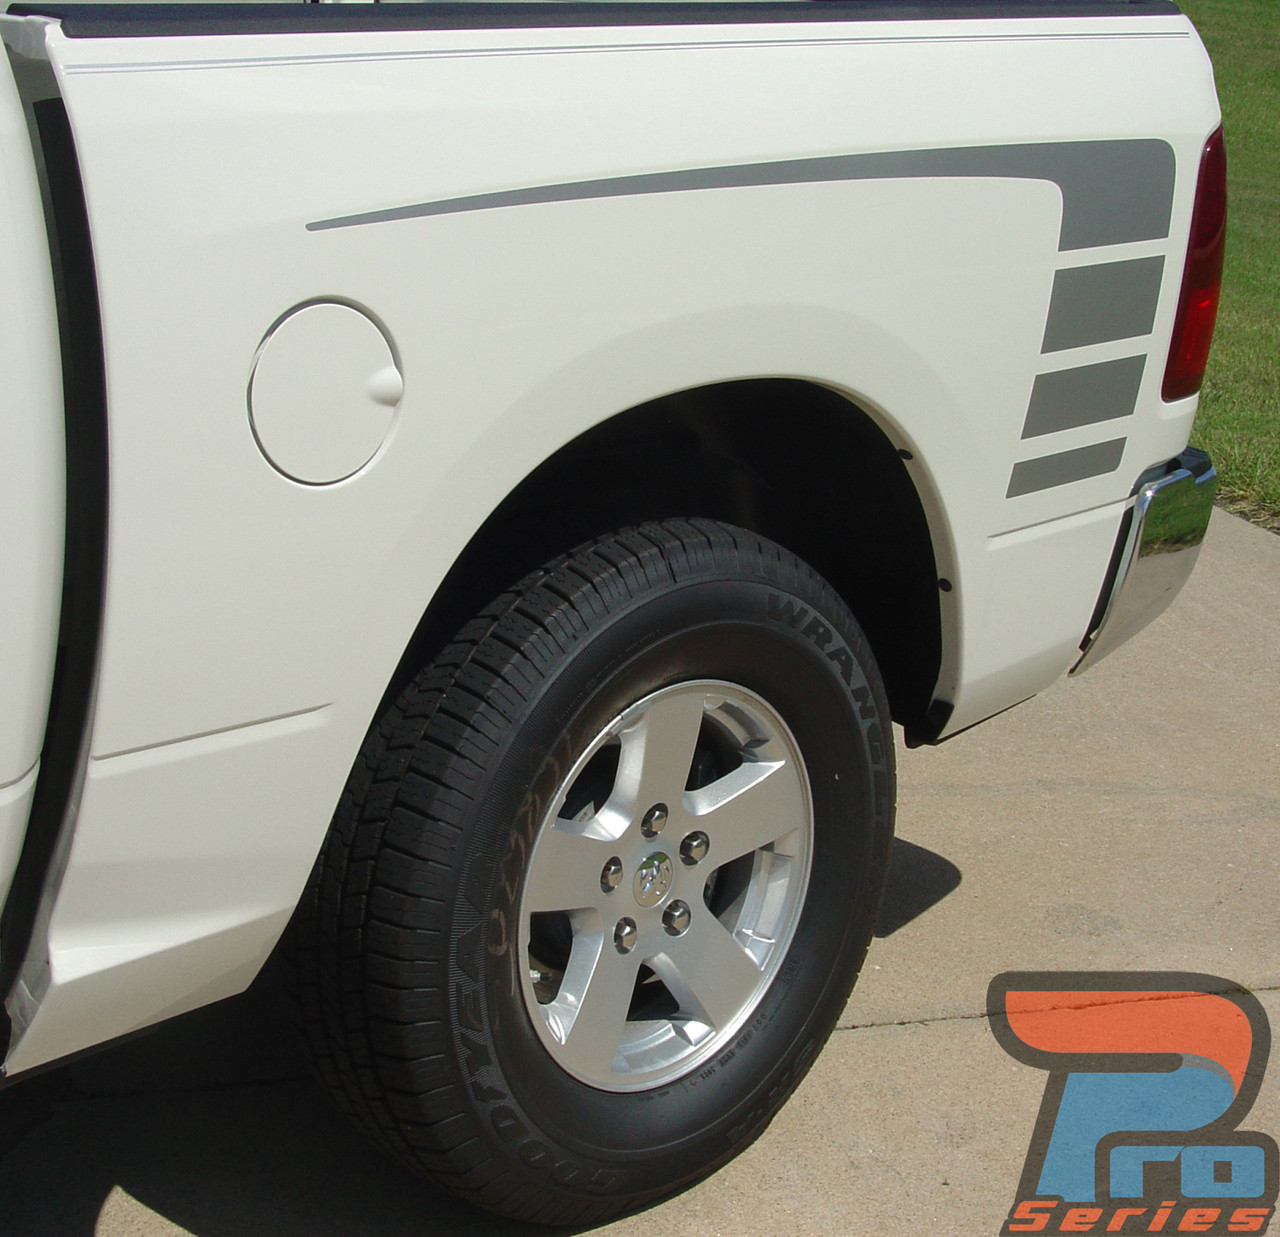 Factory Style Power Wagon Dodge Ram 1500 Stripes 2009 2018 And 2019 2021 Ram Classic